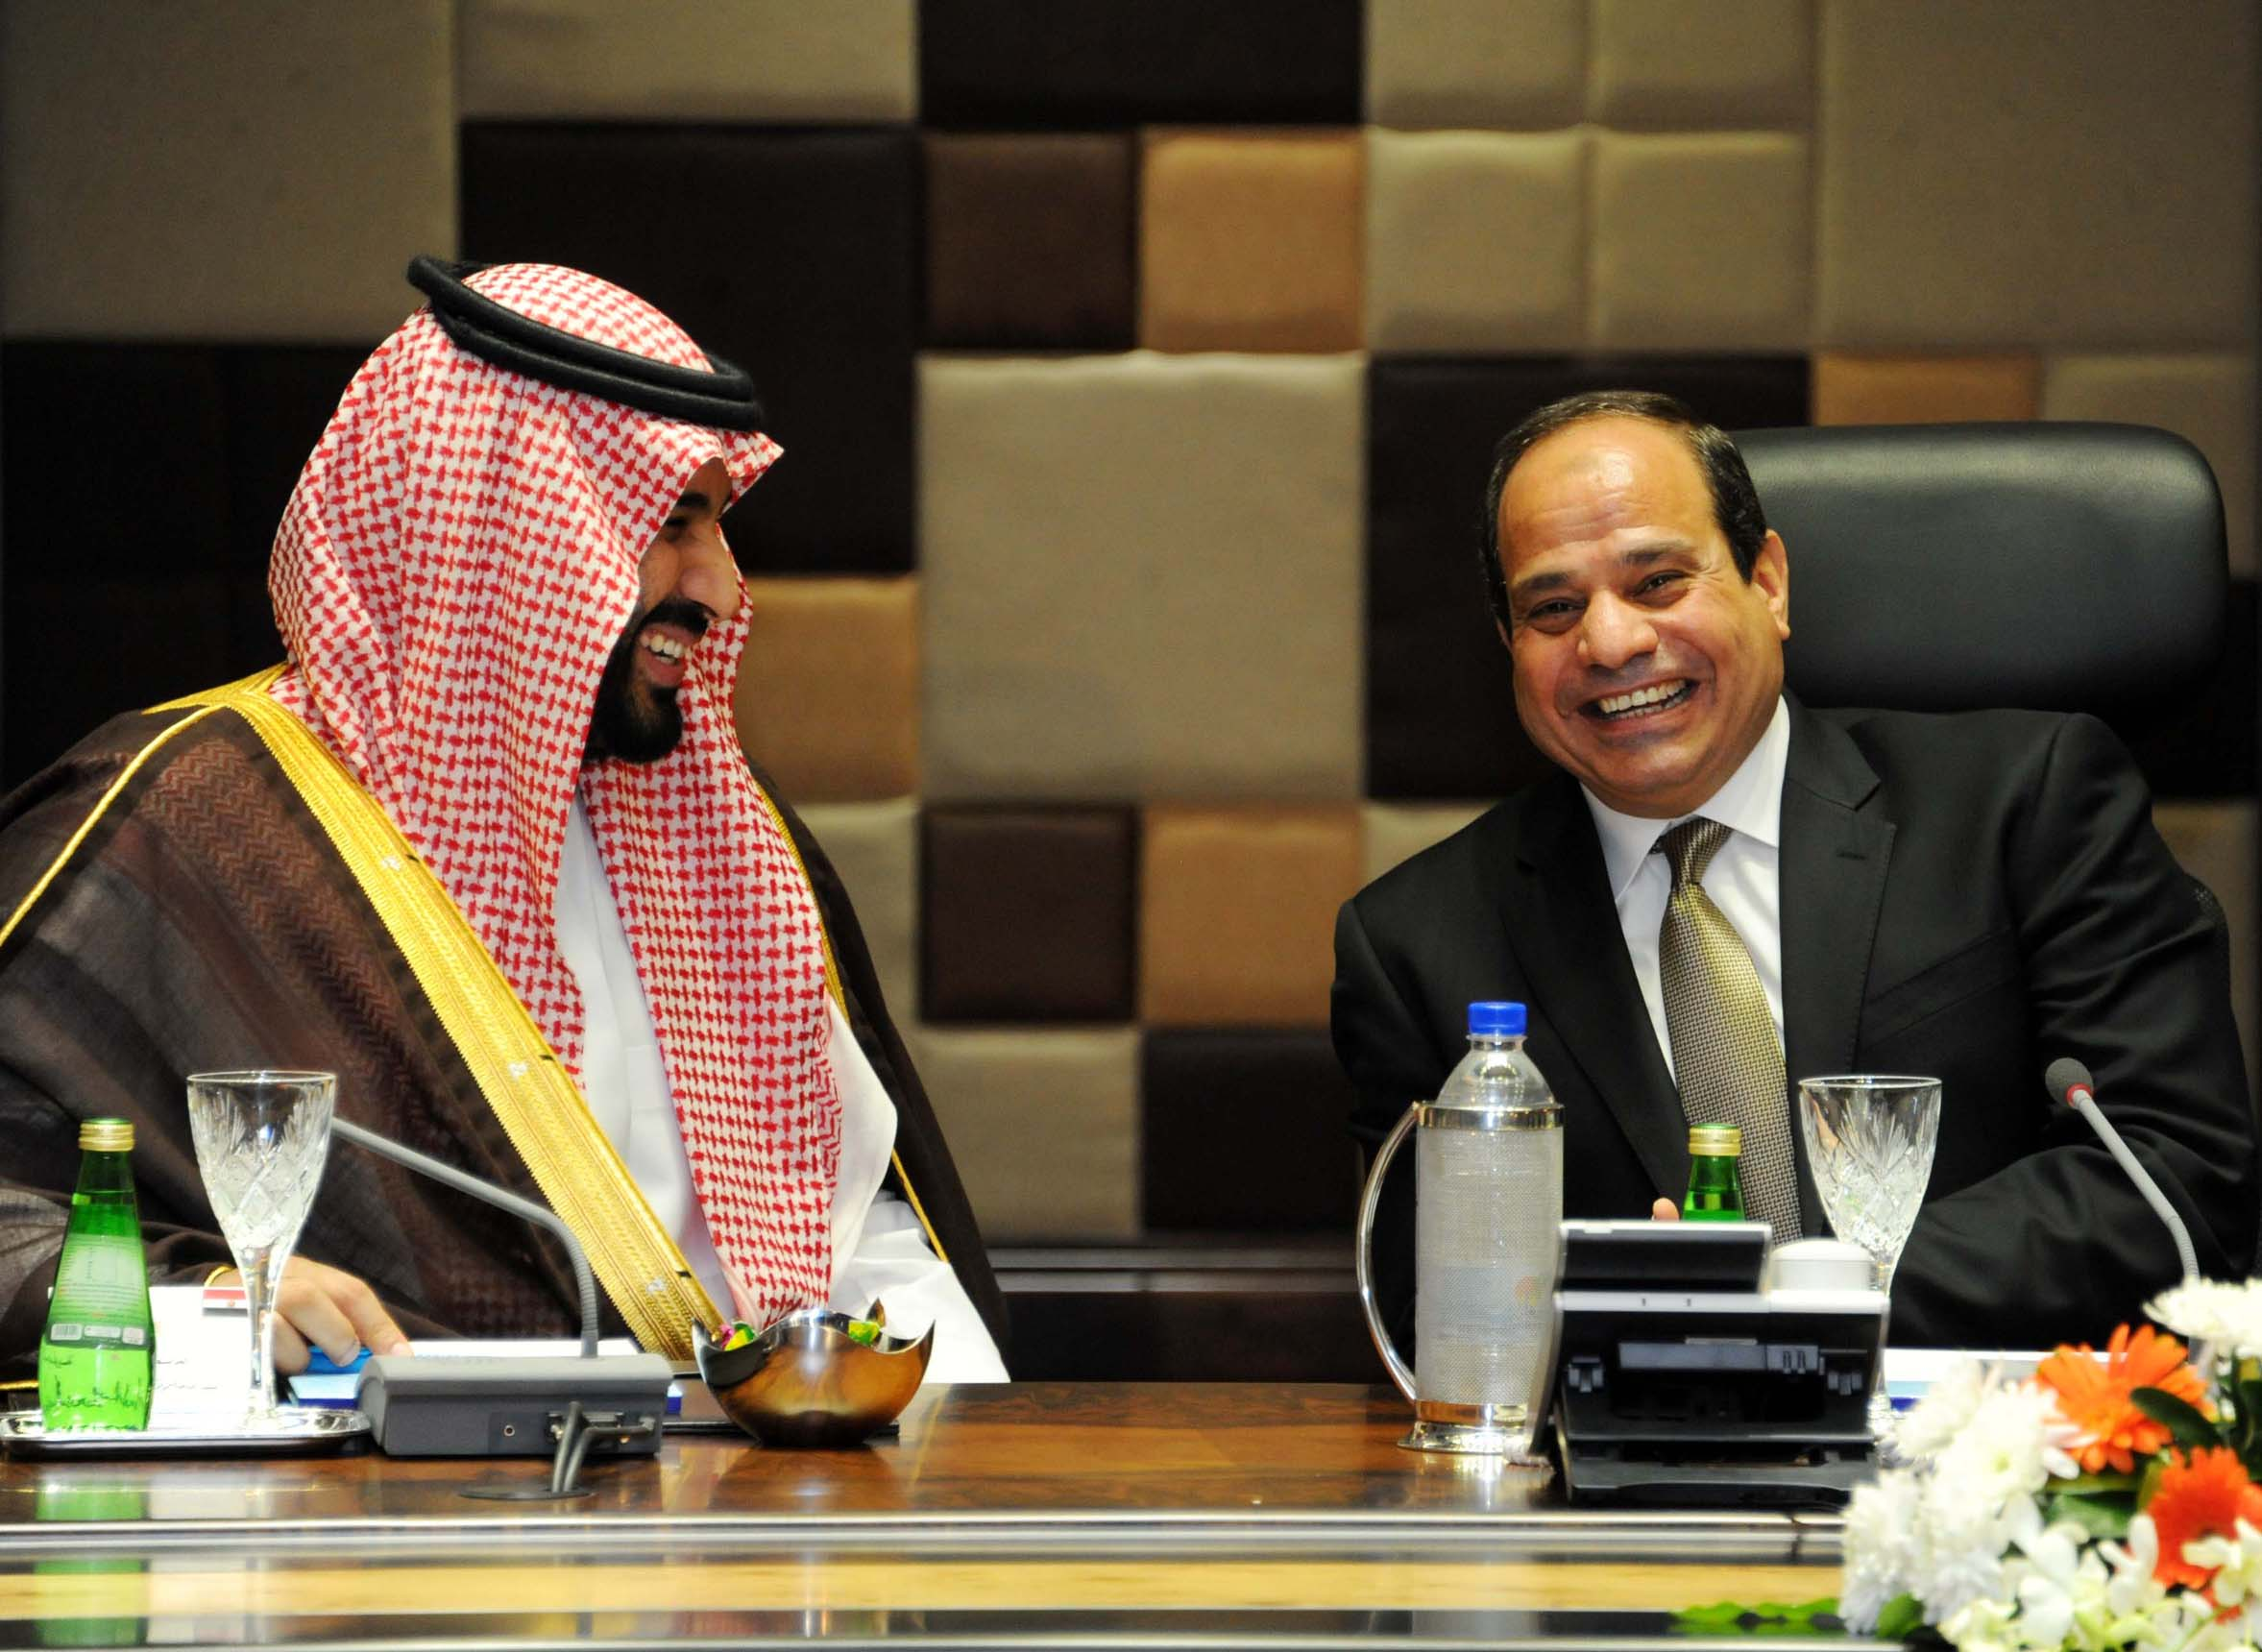 Egypt and Saudi Arabia discuss carrying out joint military manoeuvre - presidency